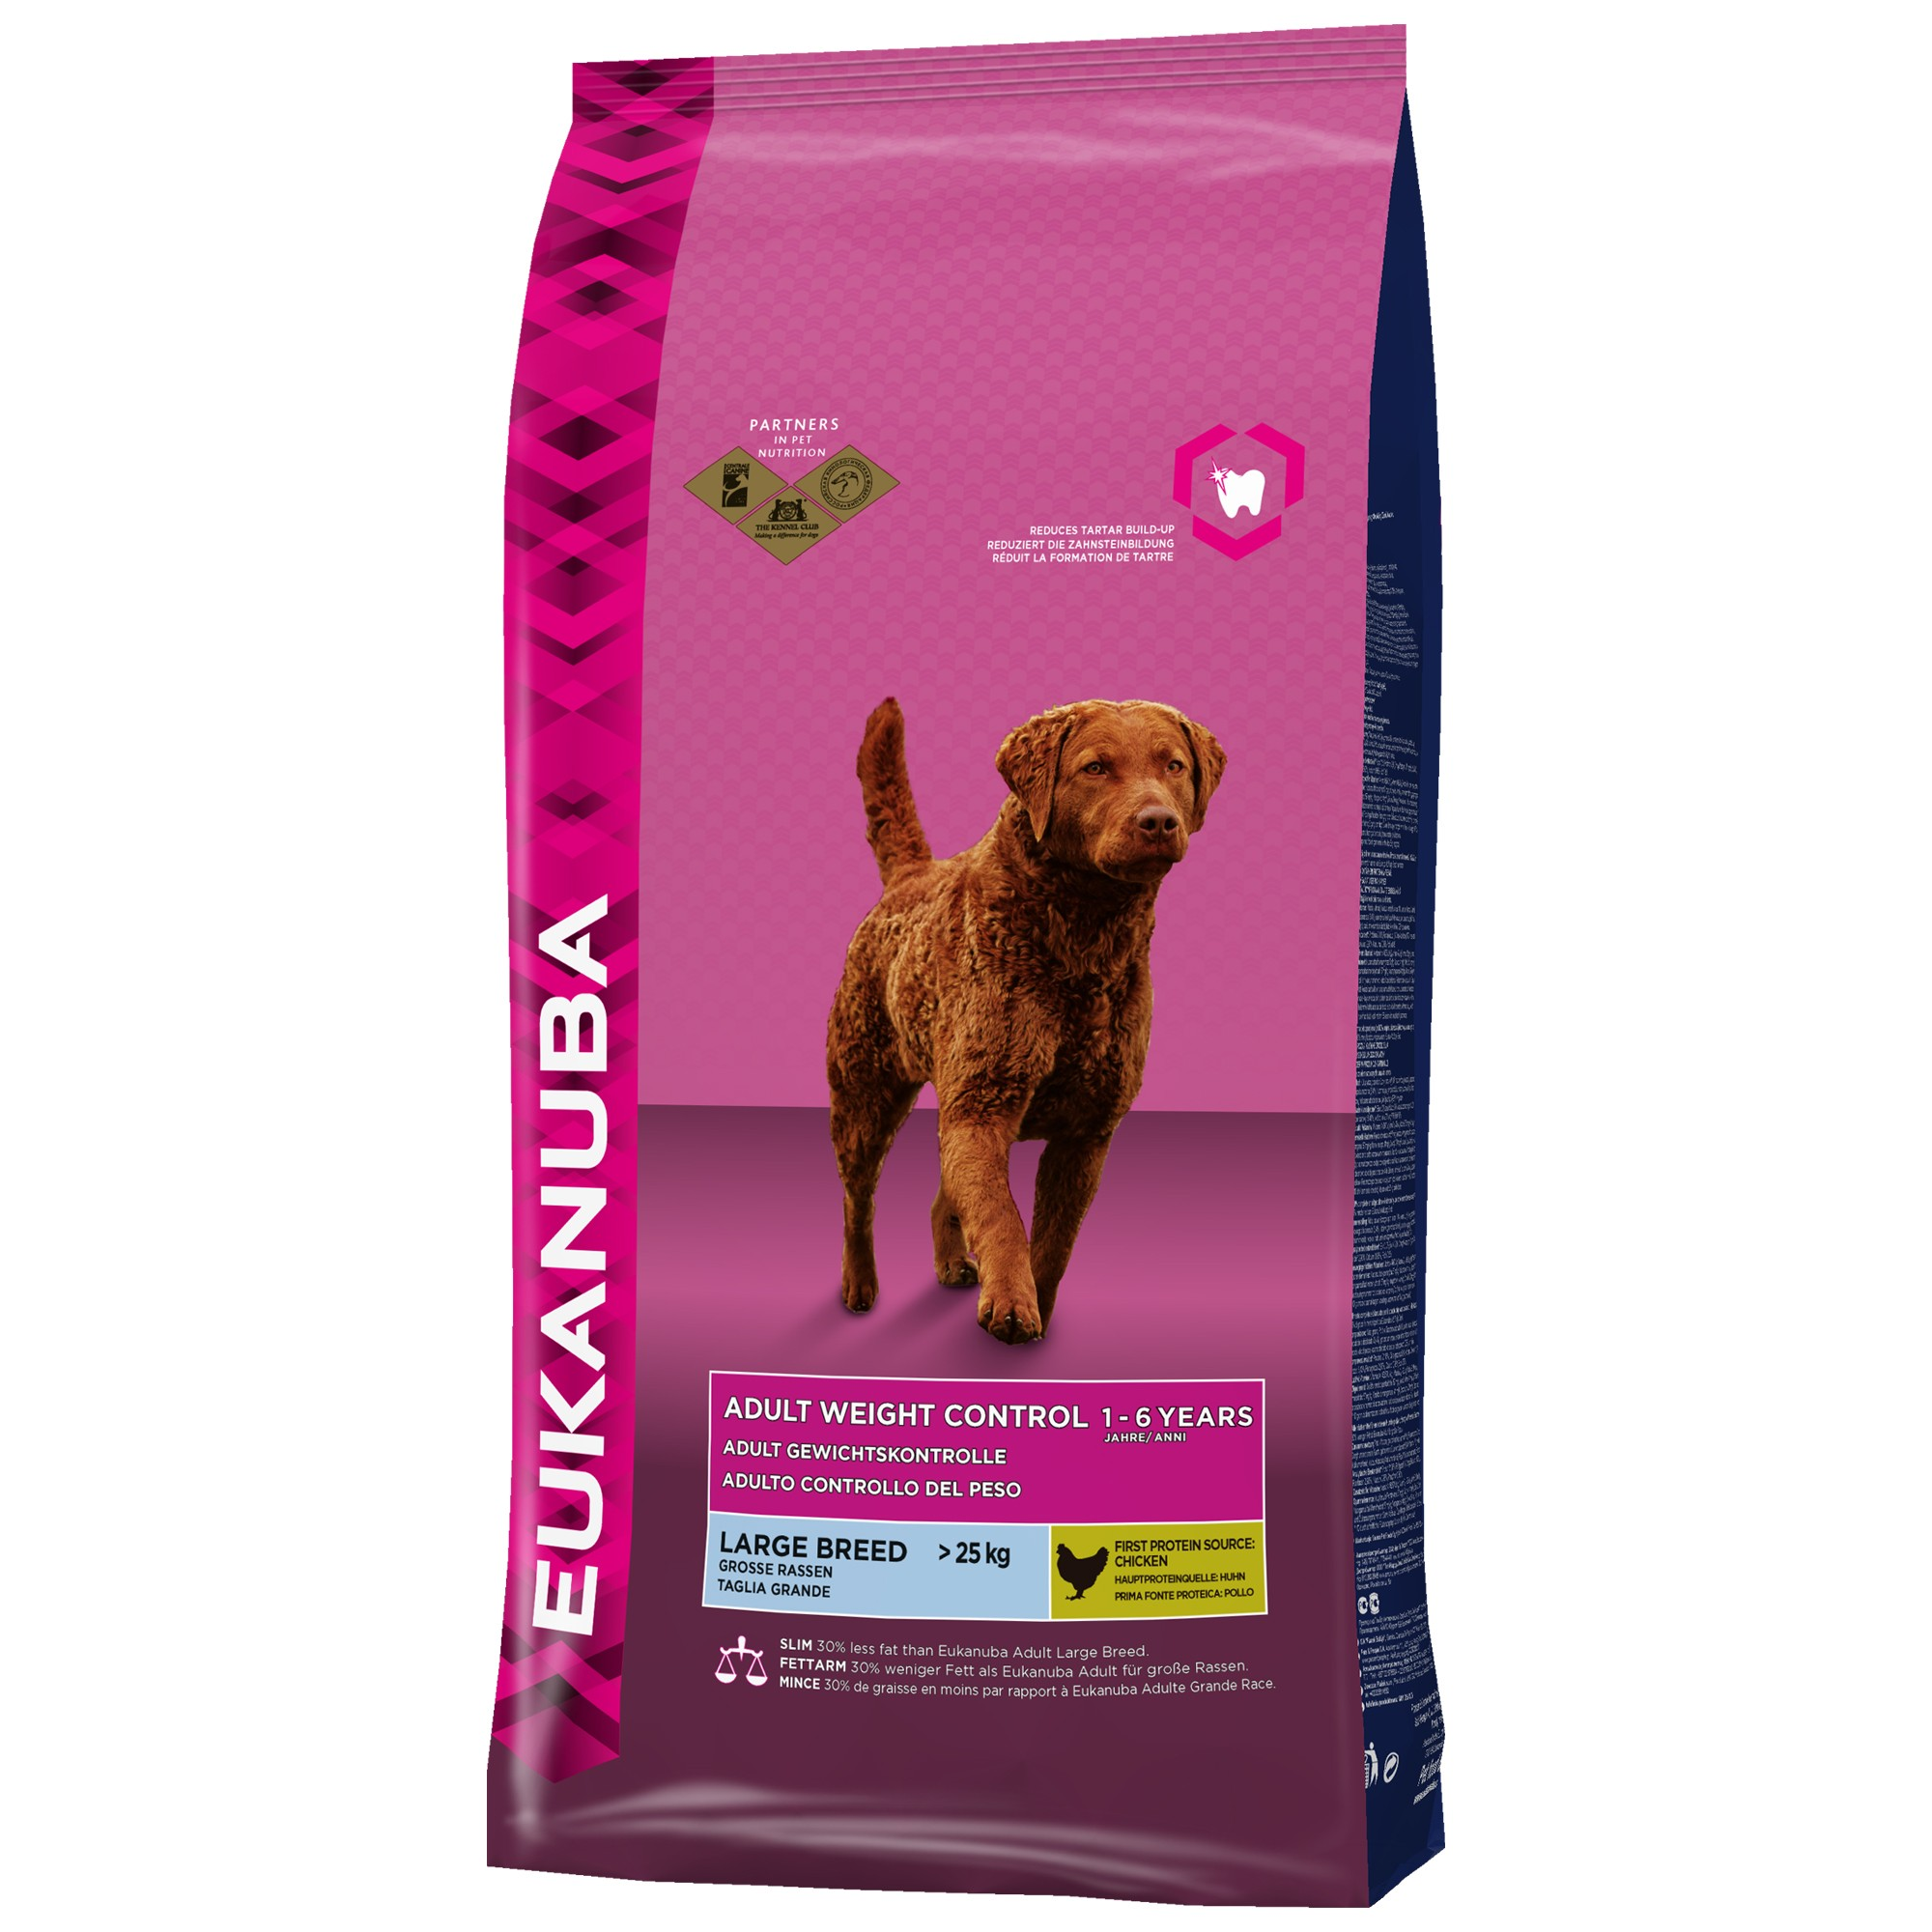 Eukanuba Adult Weight Control Large Breed hundefoder